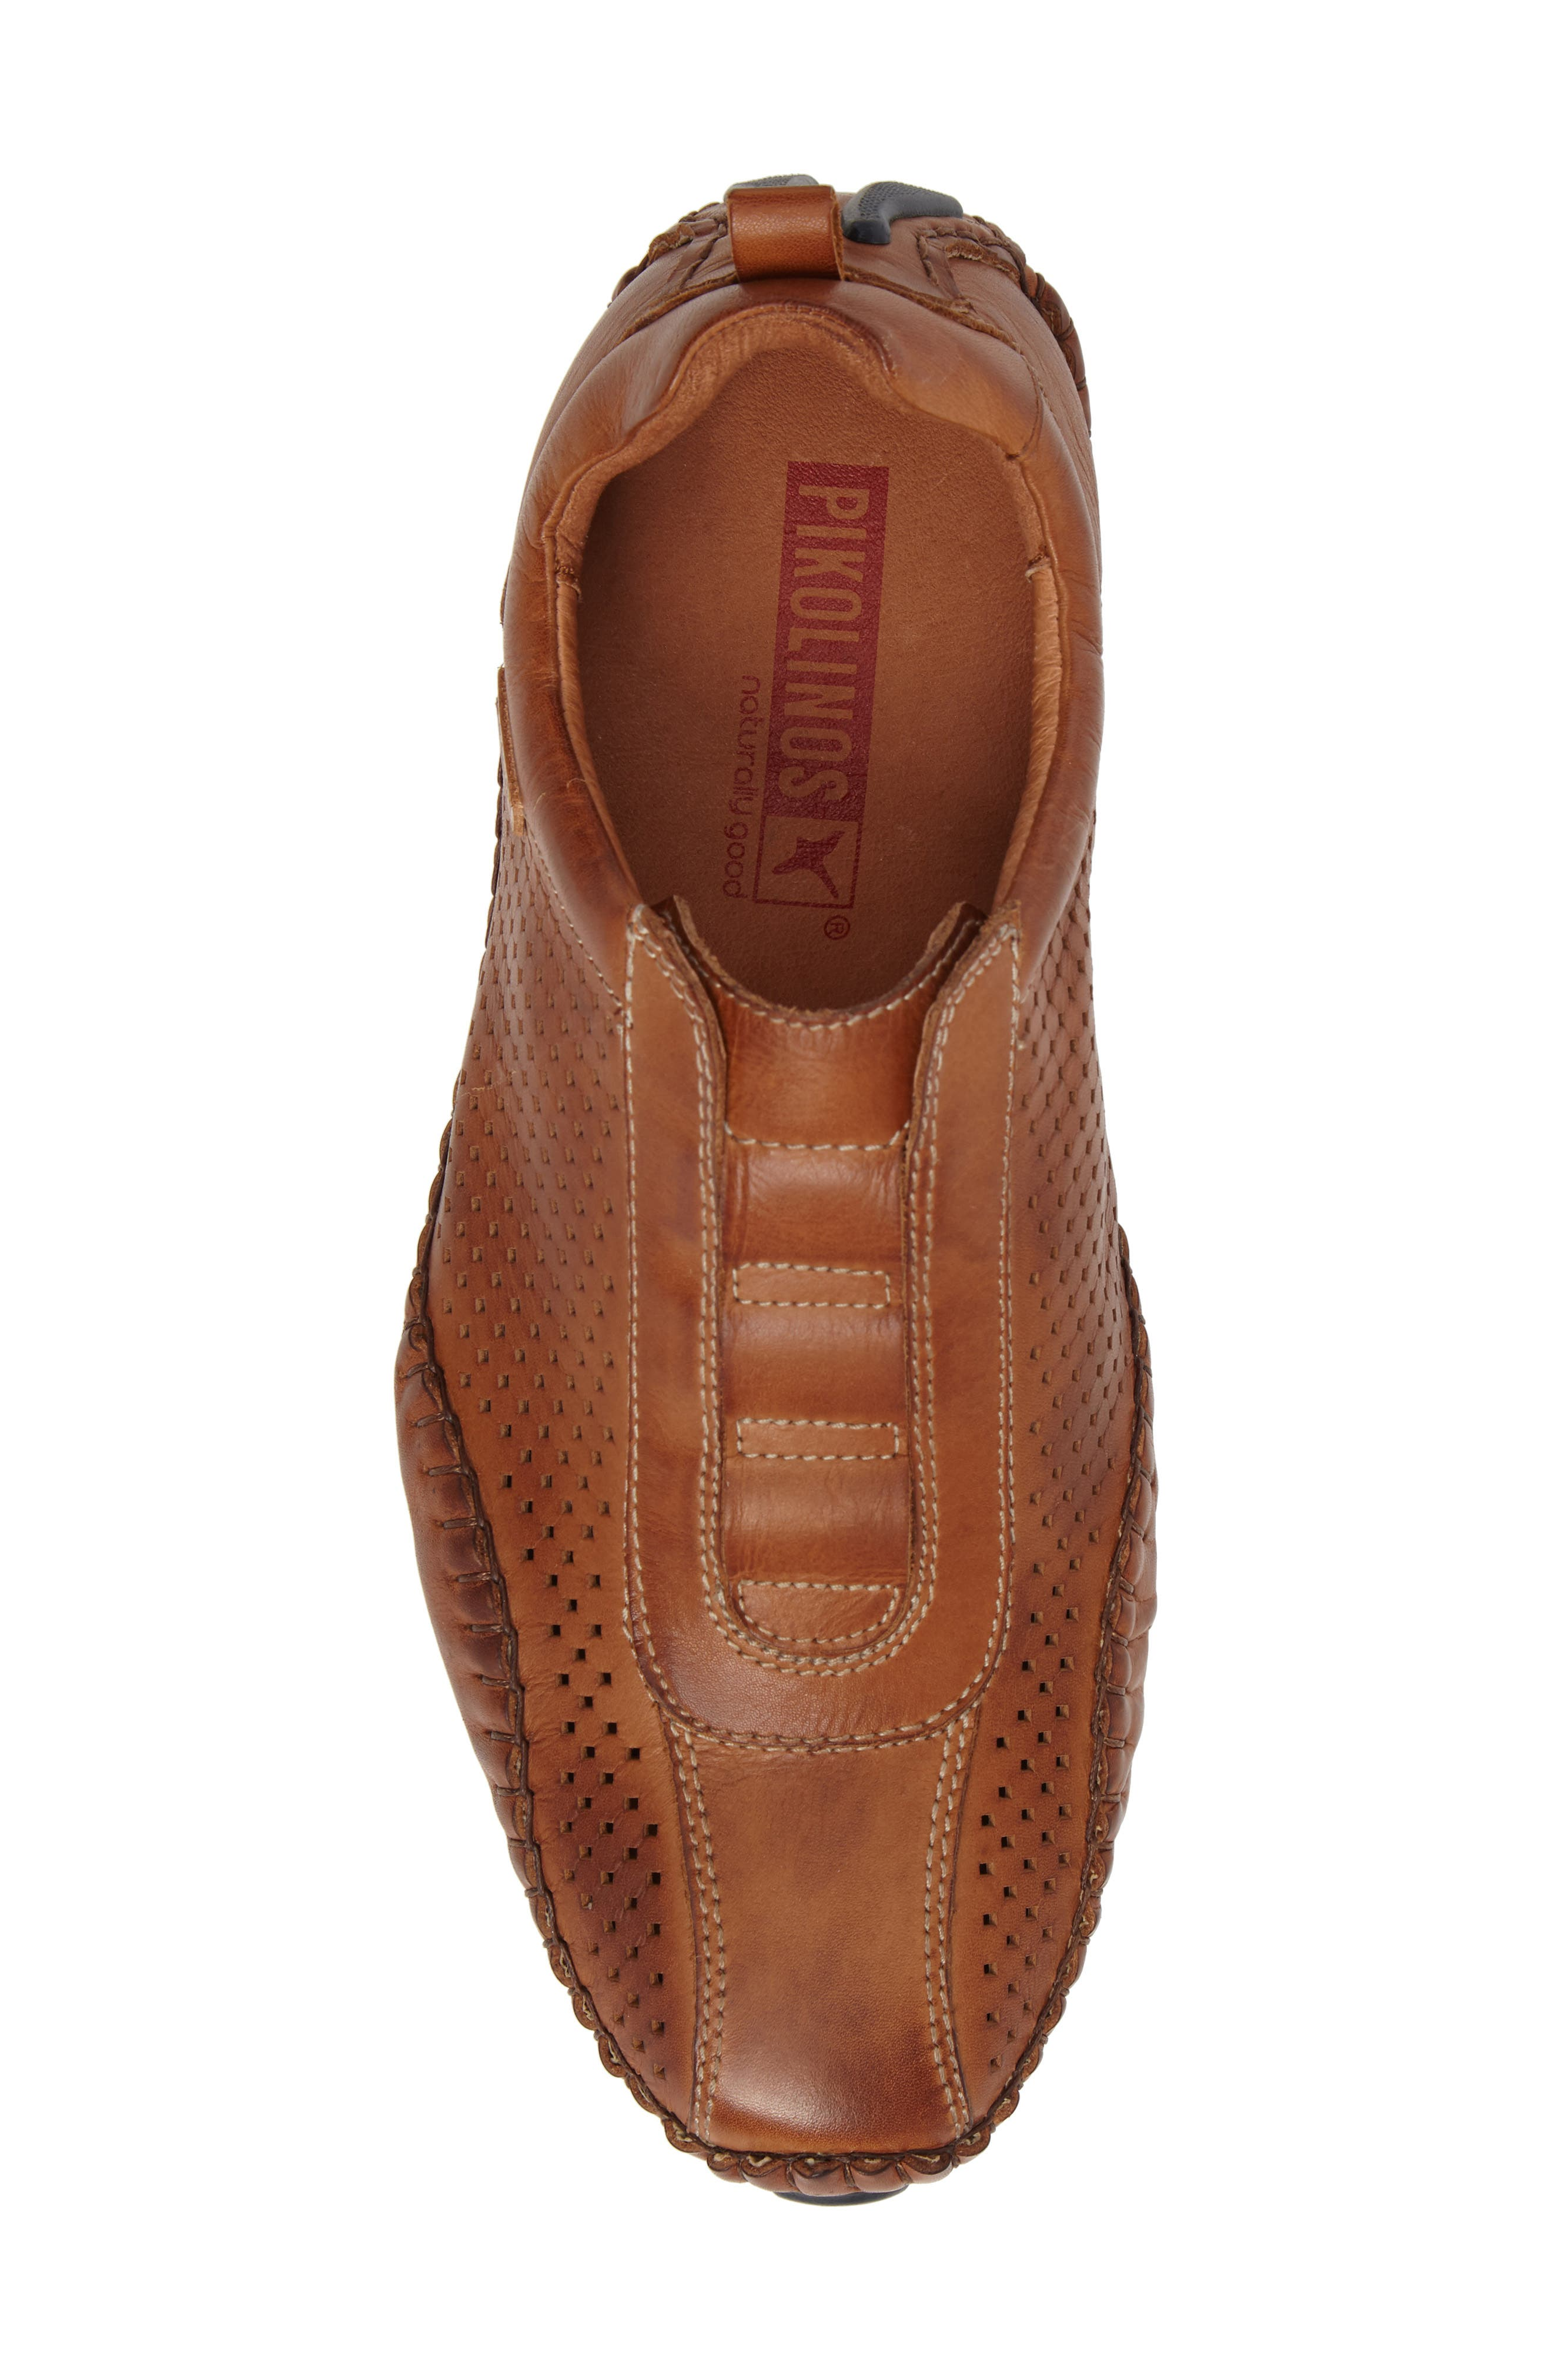 Fuencarral Driving Shoe,                             Alternate thumbnail 5, color,                             Brandy Leather